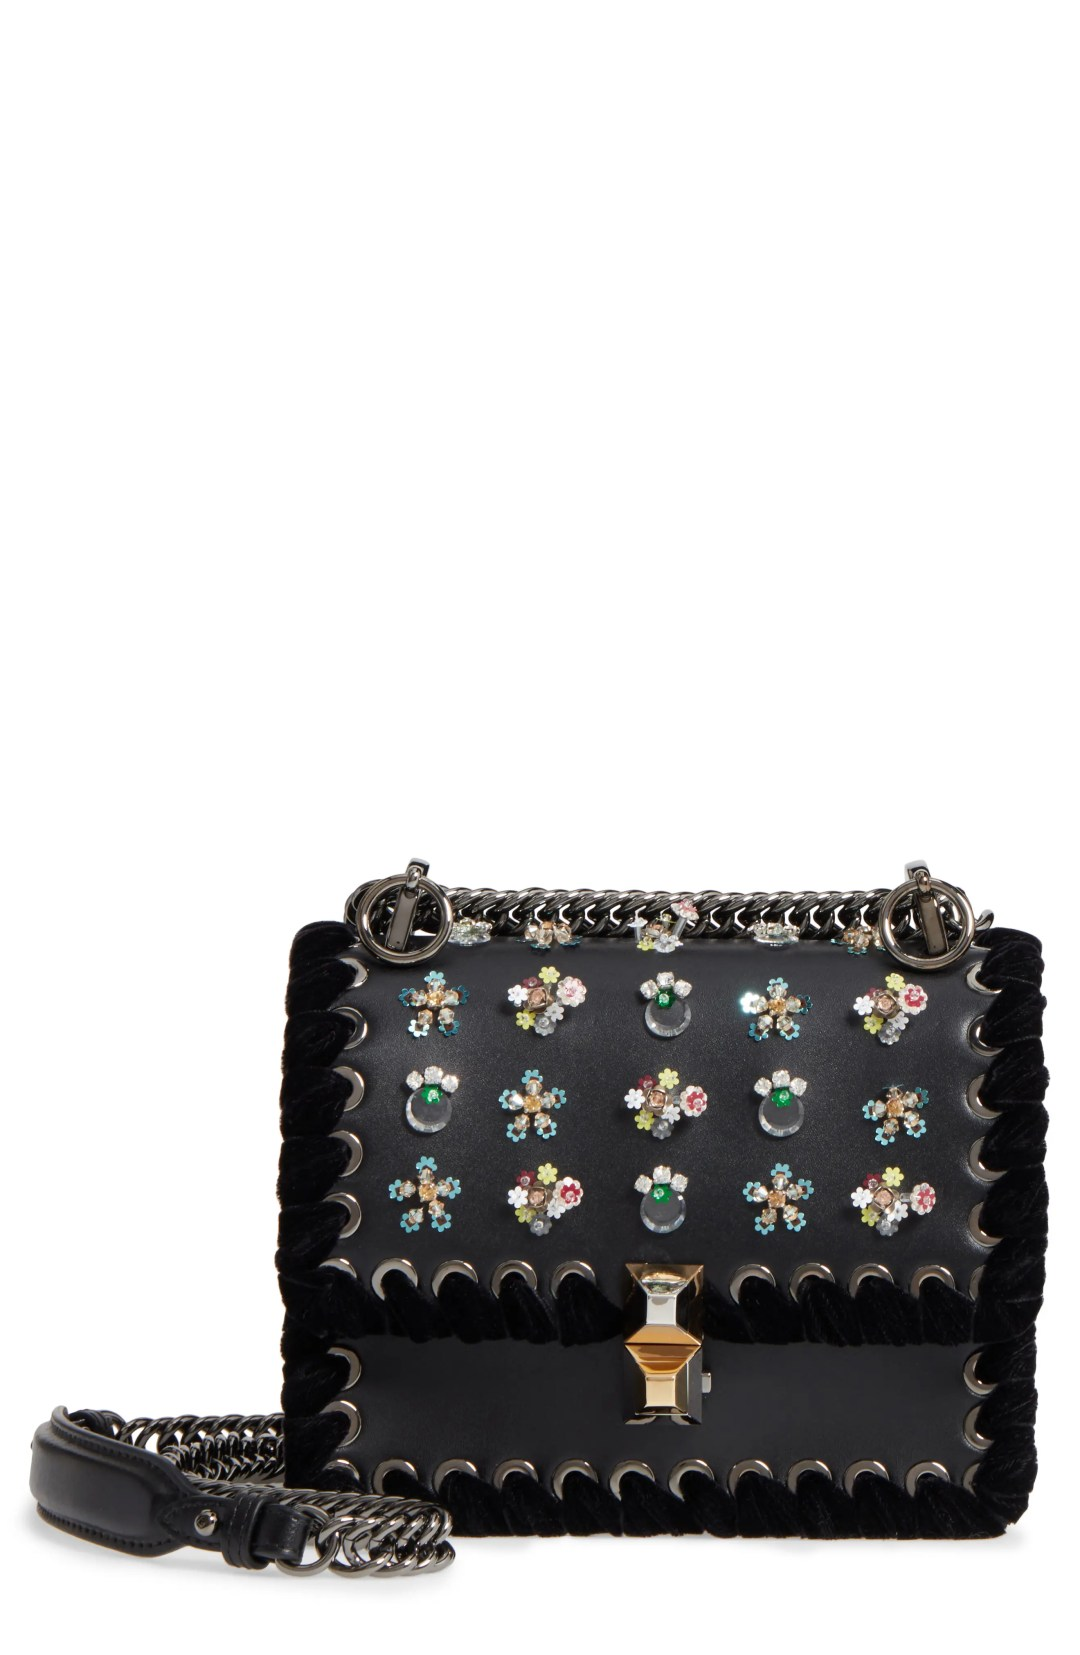 164ad66493d3 Fendi Mini Kan Beaded Flowers Calfskin Leather Shoulder Bag – Black –  NORDSTROM.com – $3,050.00